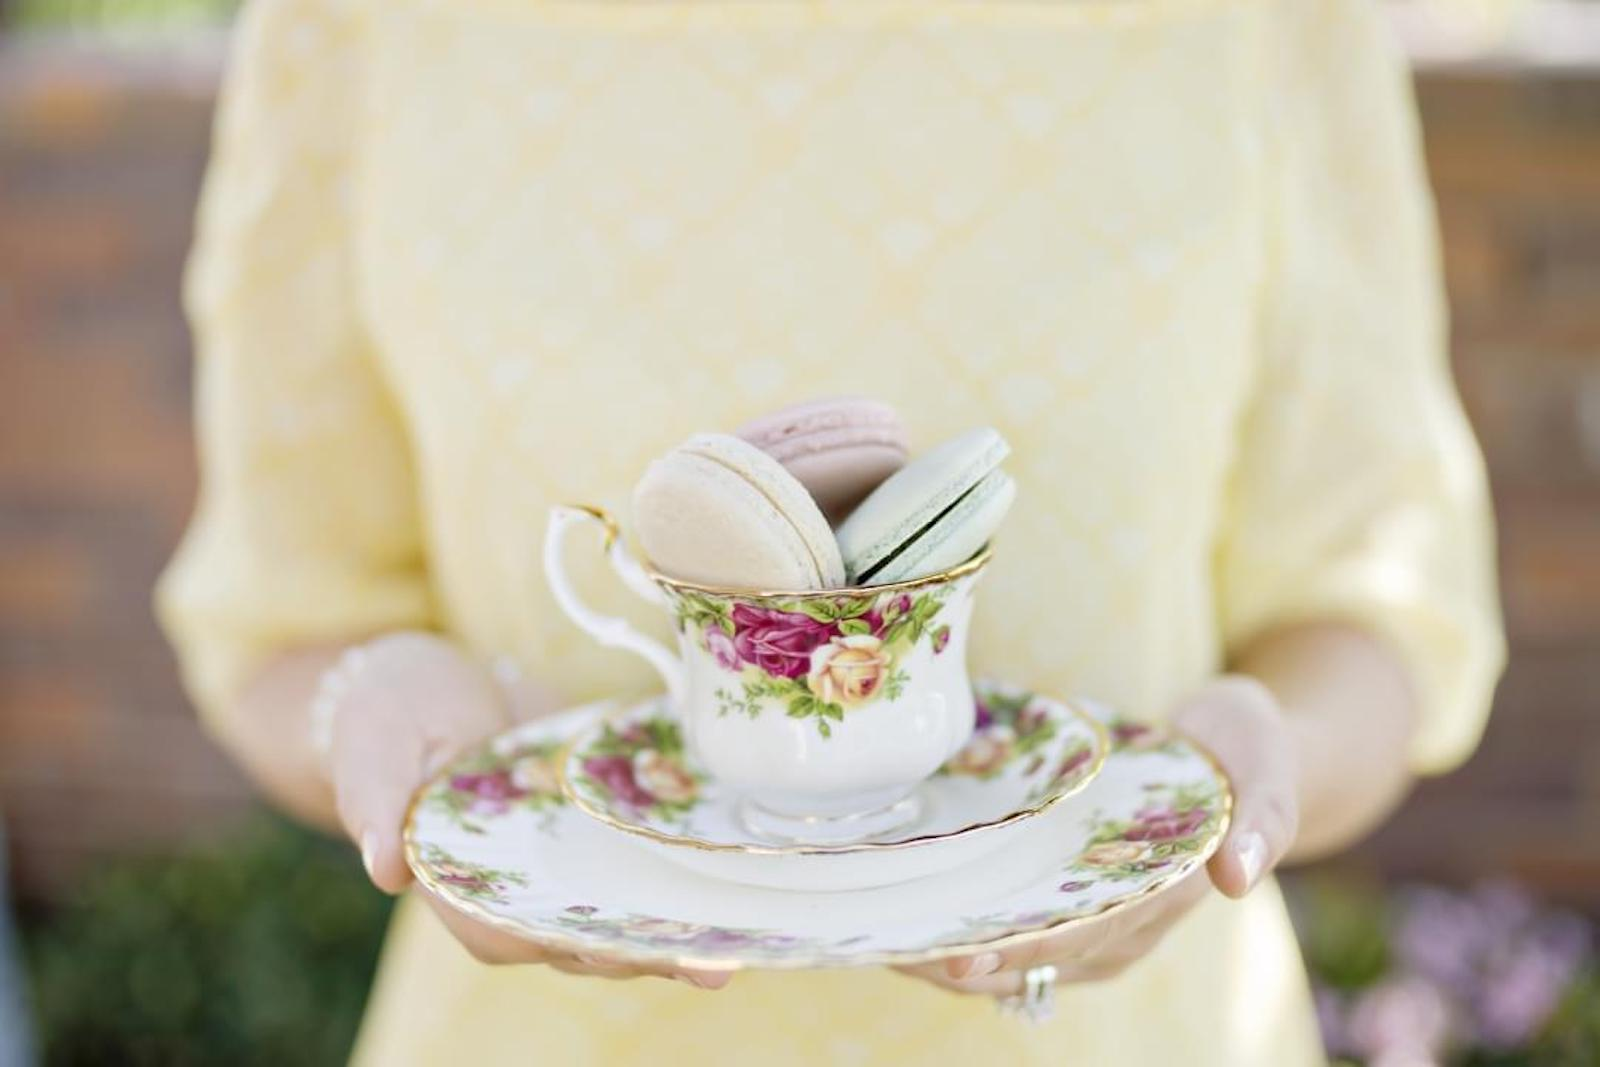 woman in yellow dress holding antique tea cup with macaroons inside